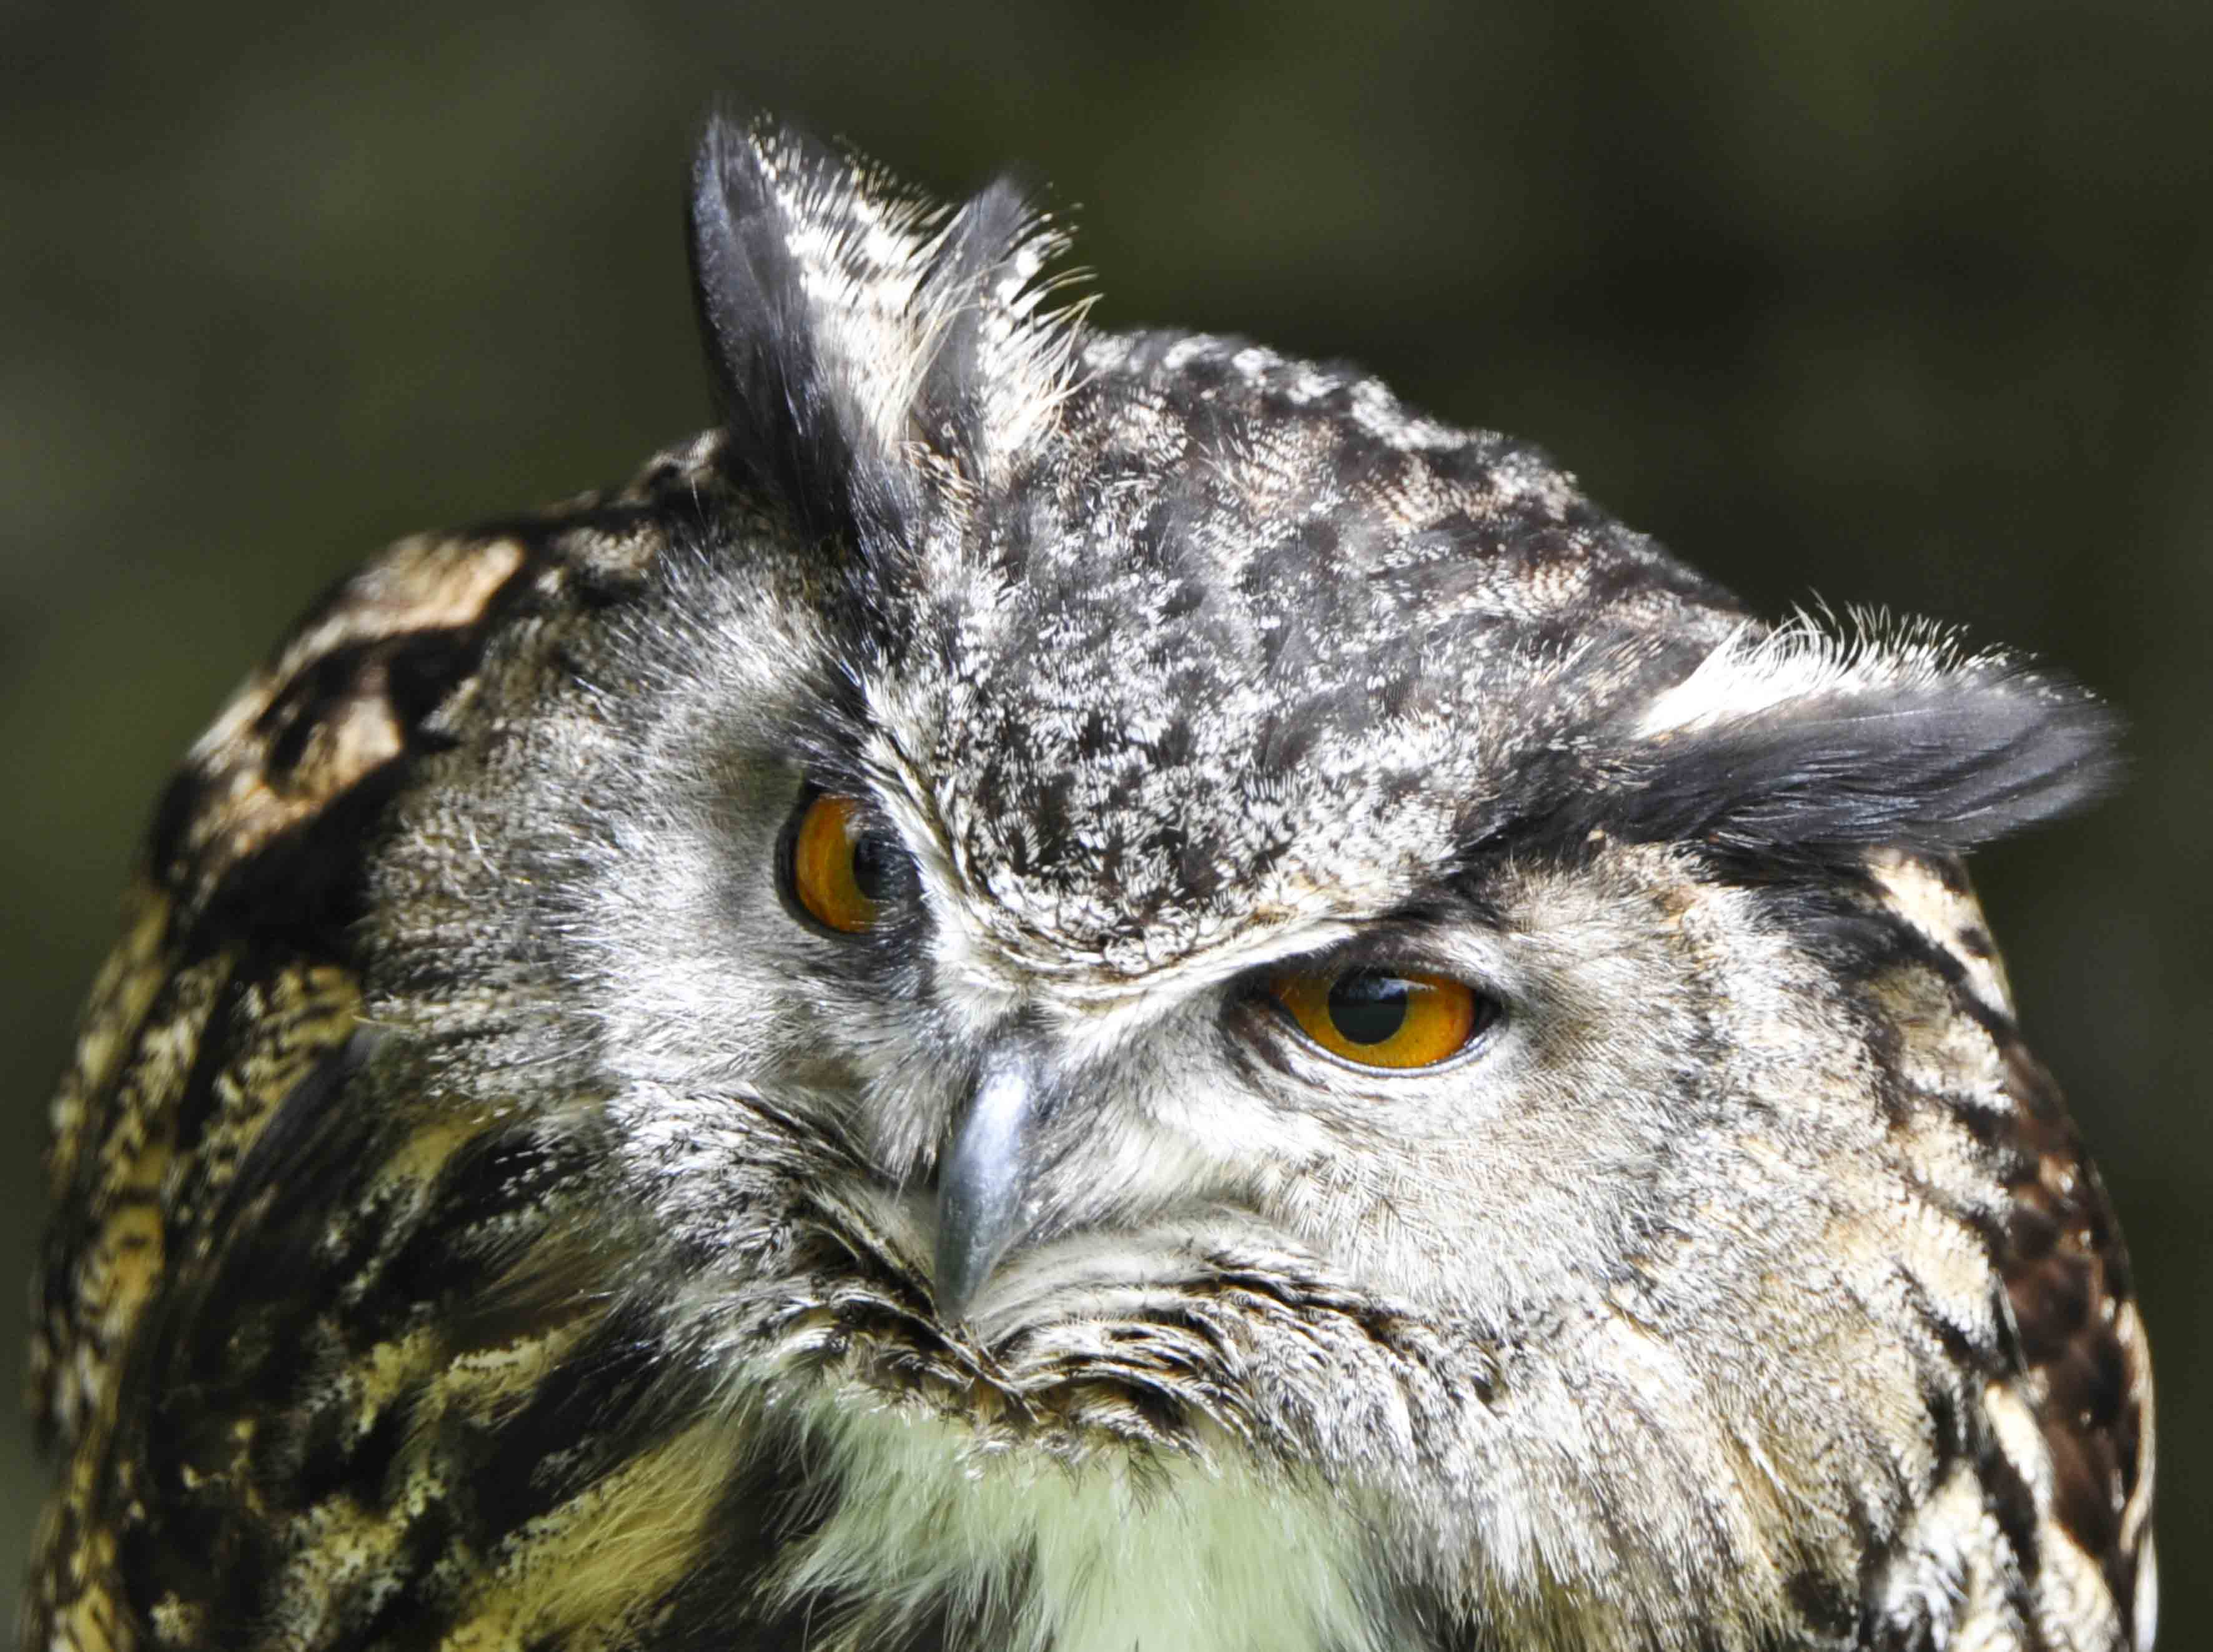 Bonsai, Bengali Eagle Owl II, Falconry Dunrobin Castle ©Johannes Ratermann